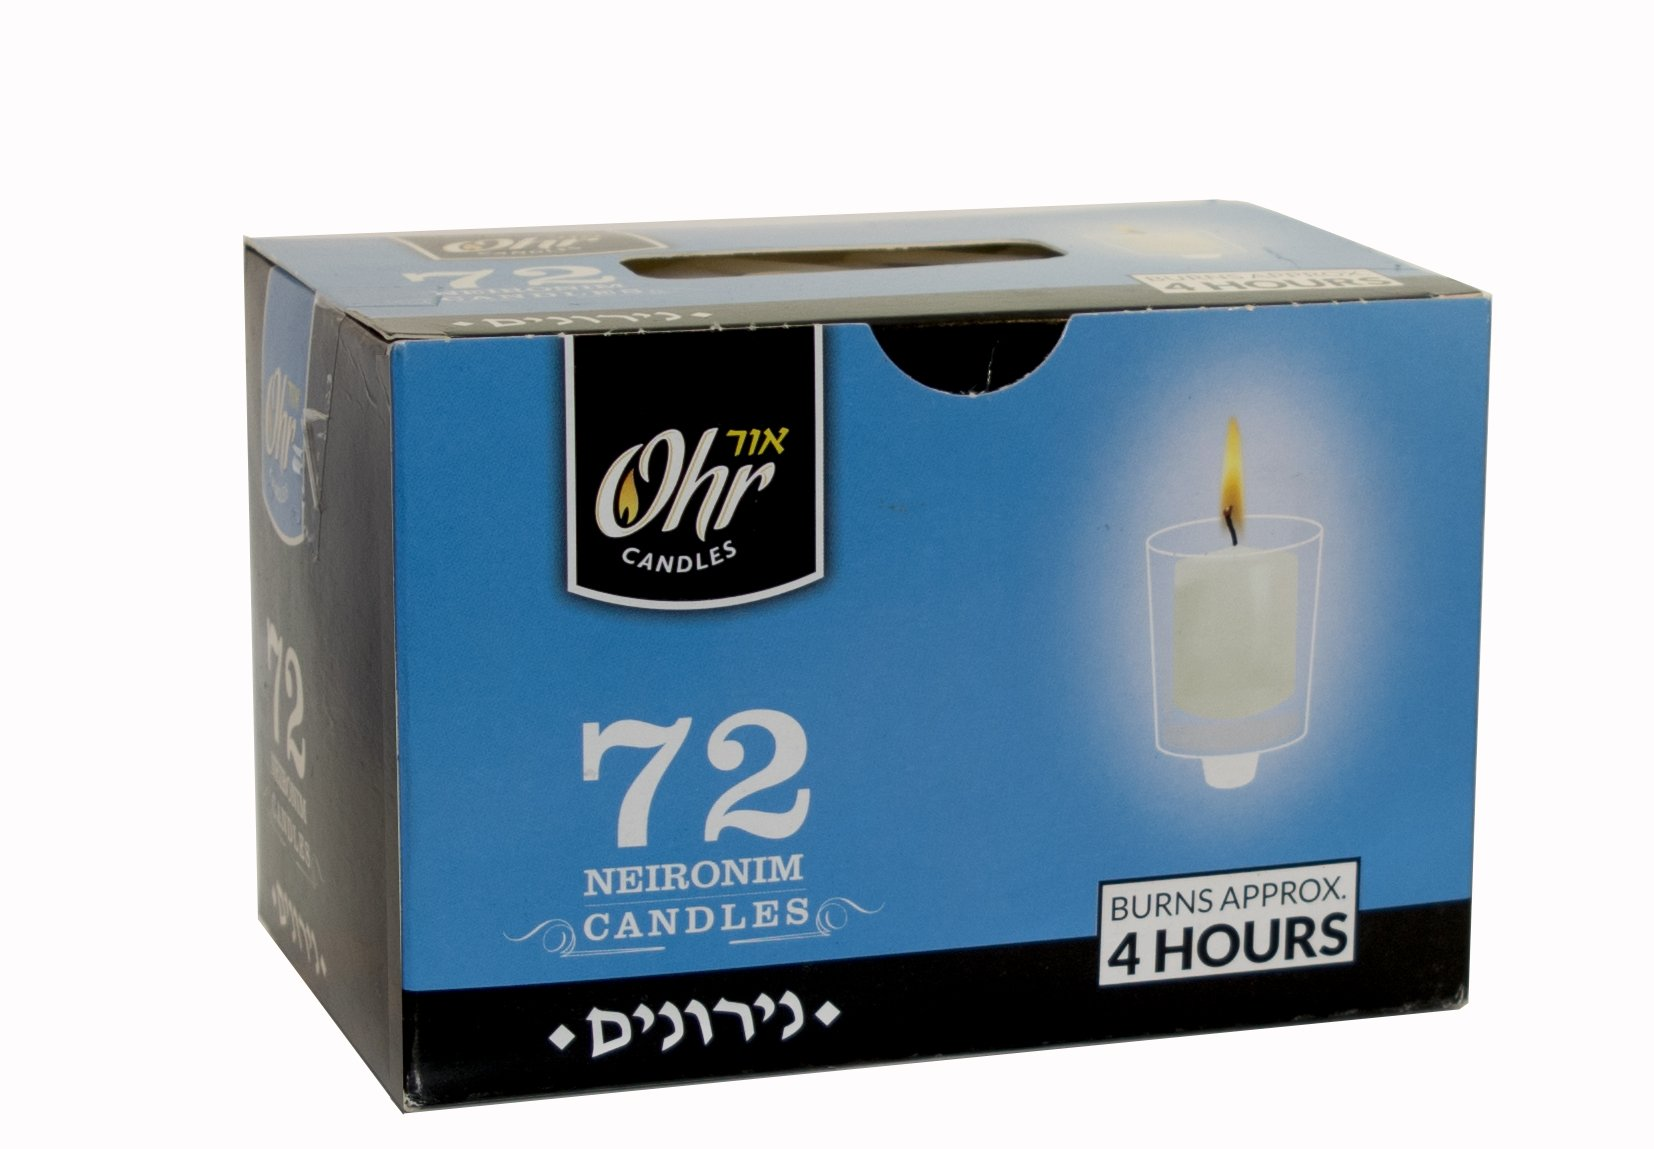 Ohr 4 Hour Neironim Candles - Shabbat and Small Votive Wax Candle - 72 Count - by